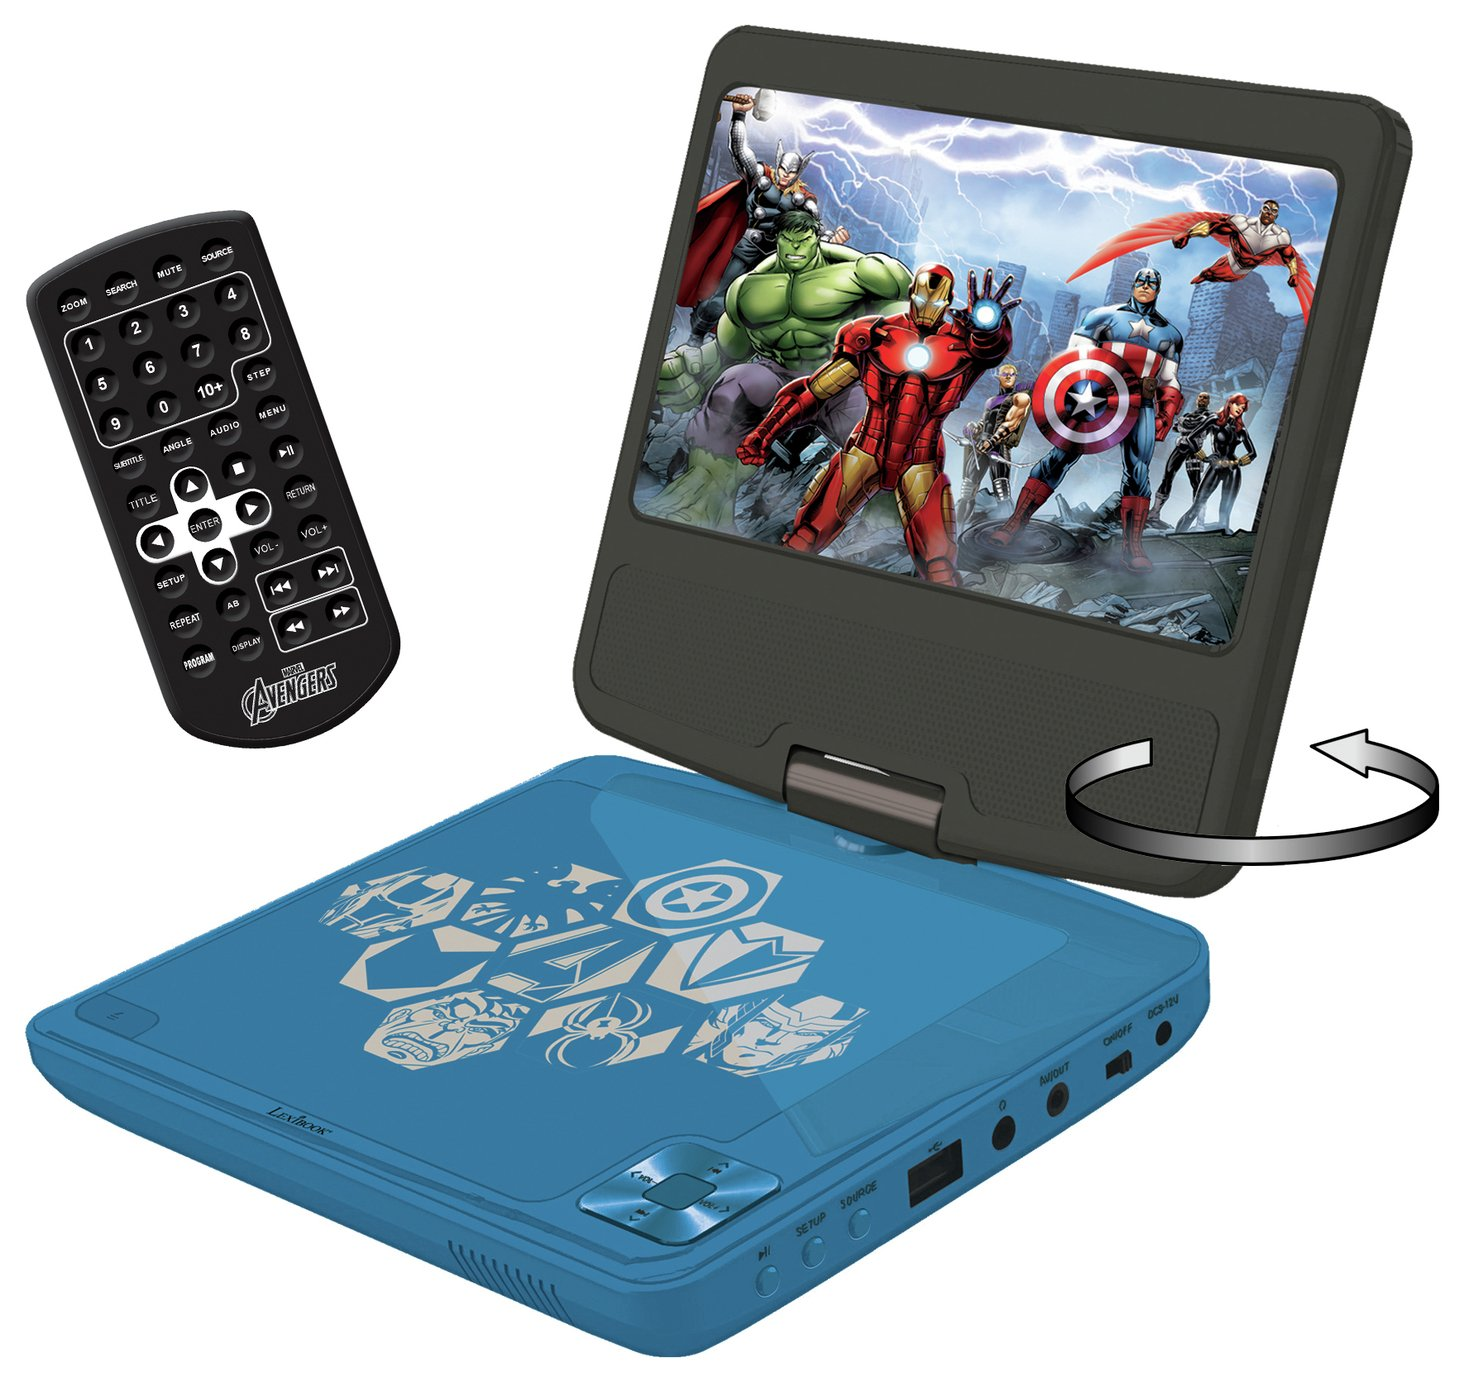 Lexibook Avengers 7 Inch Portable DVD Player